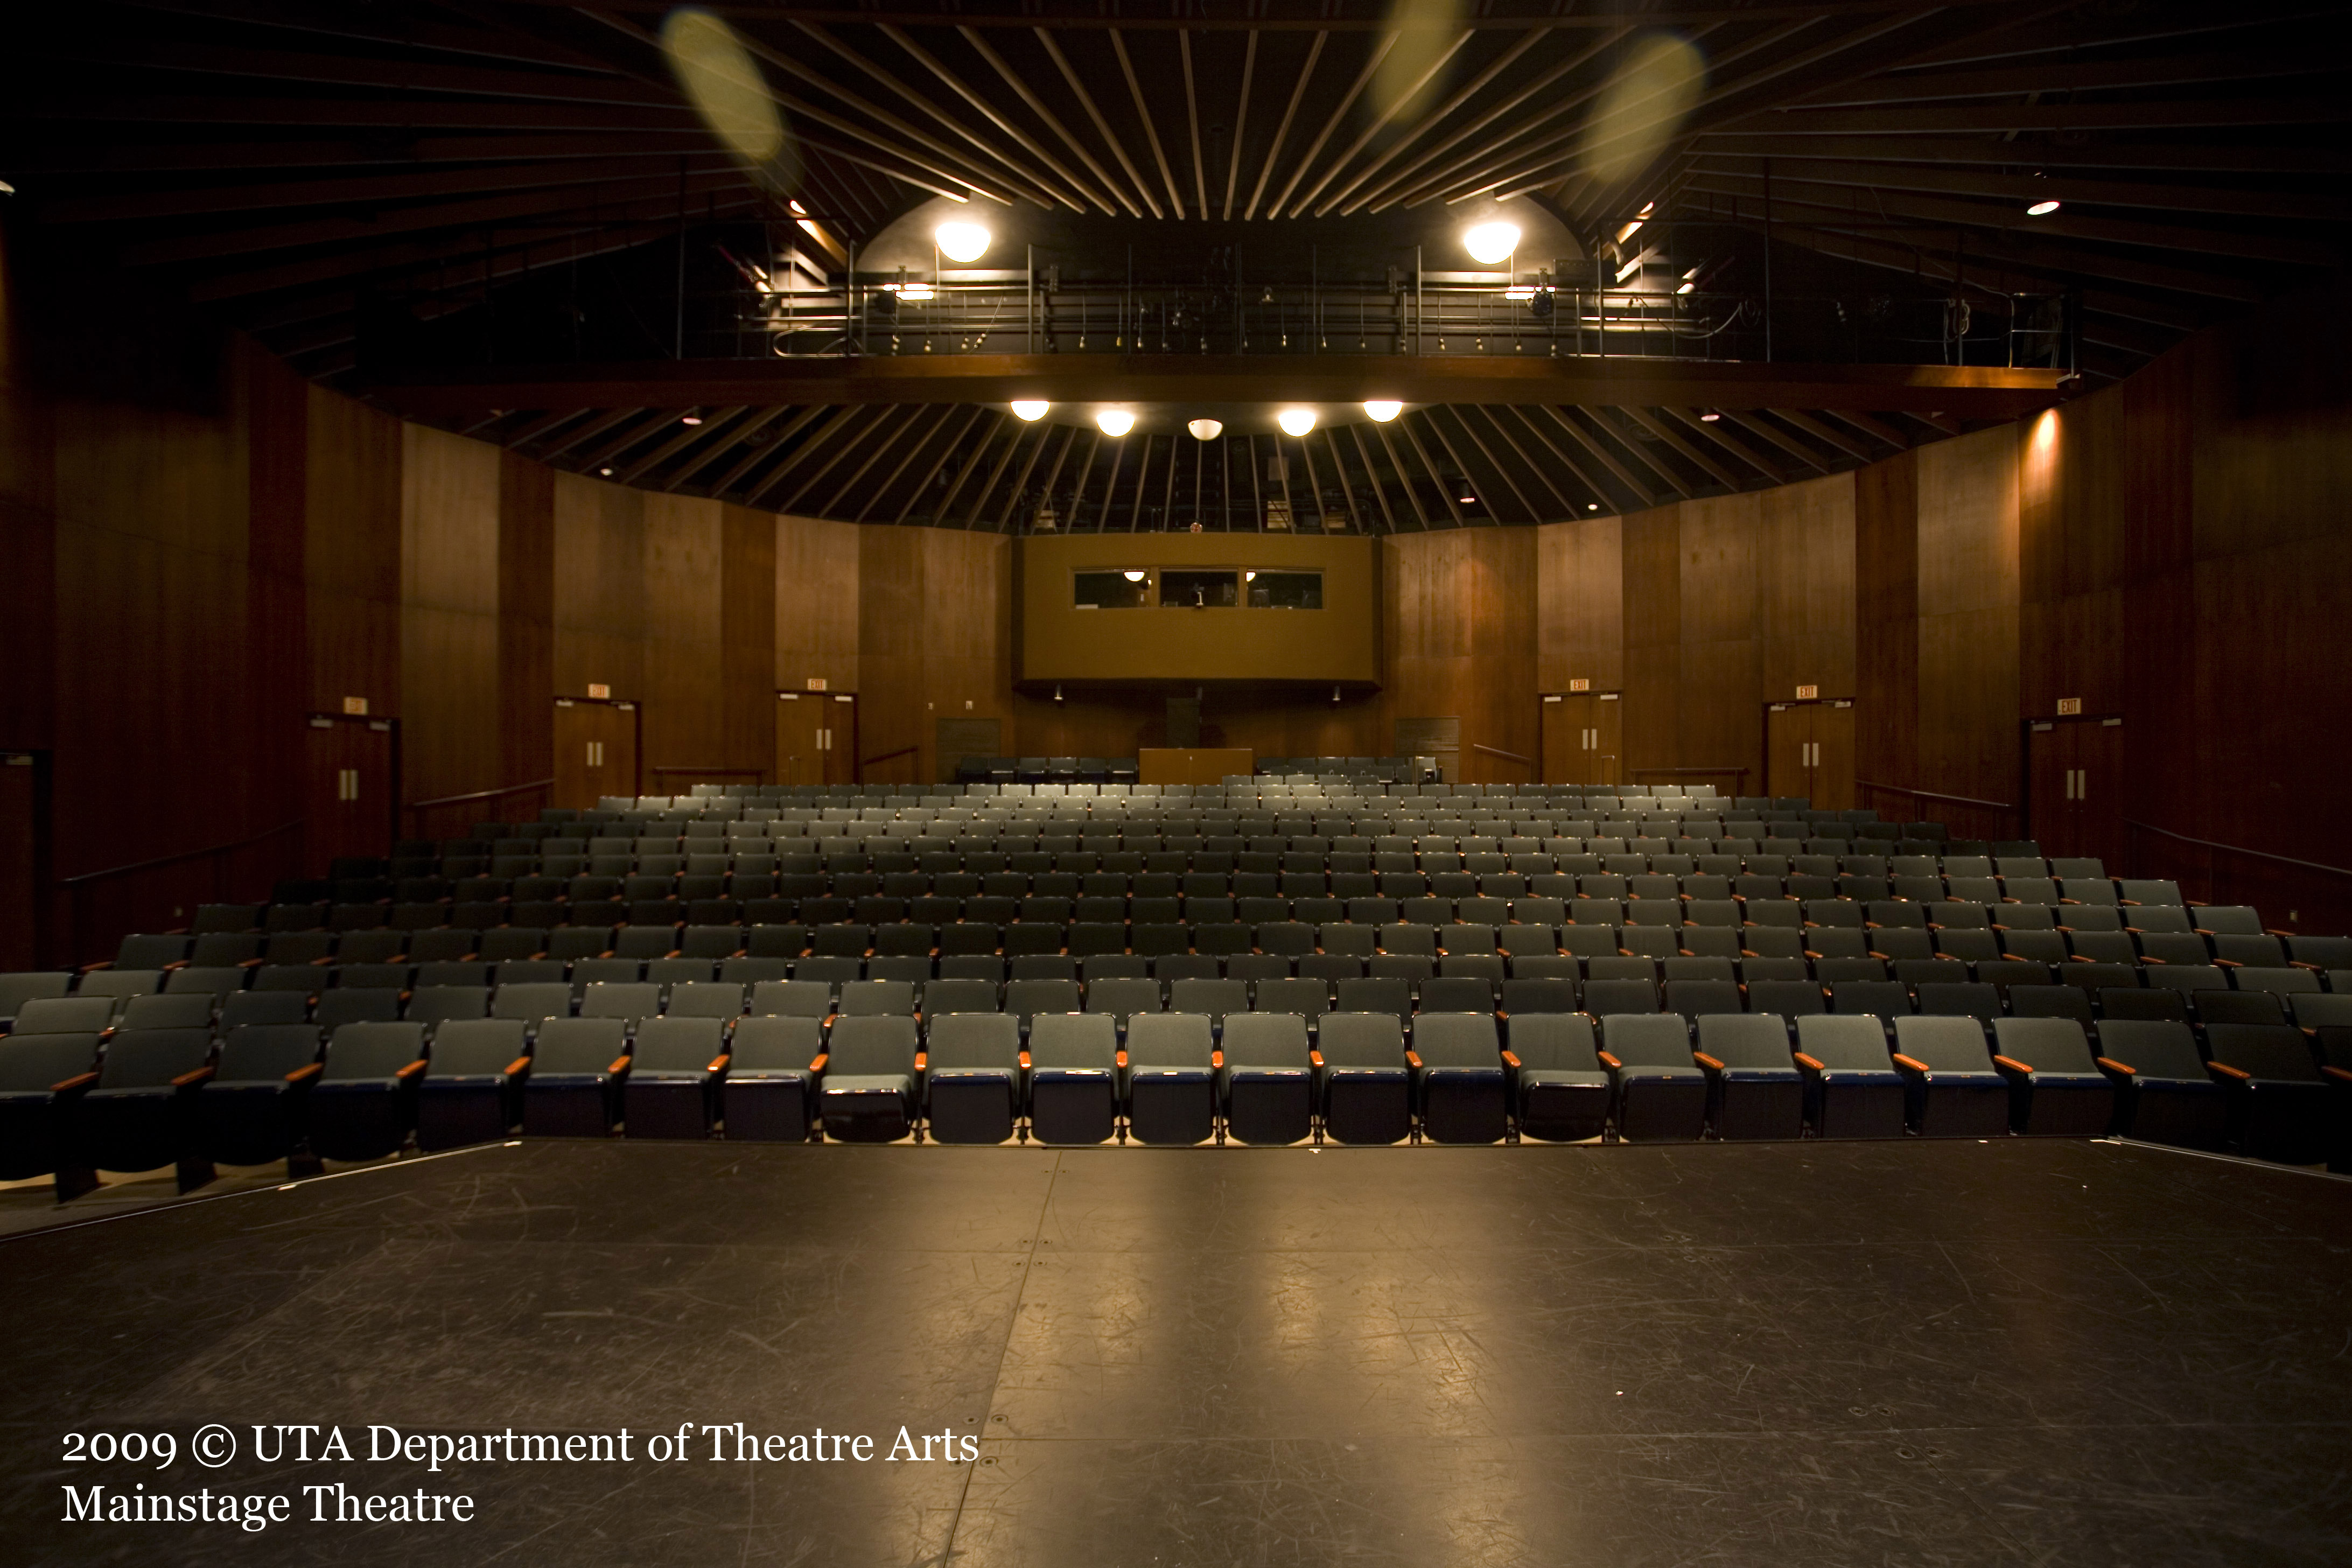 Mainstage theater